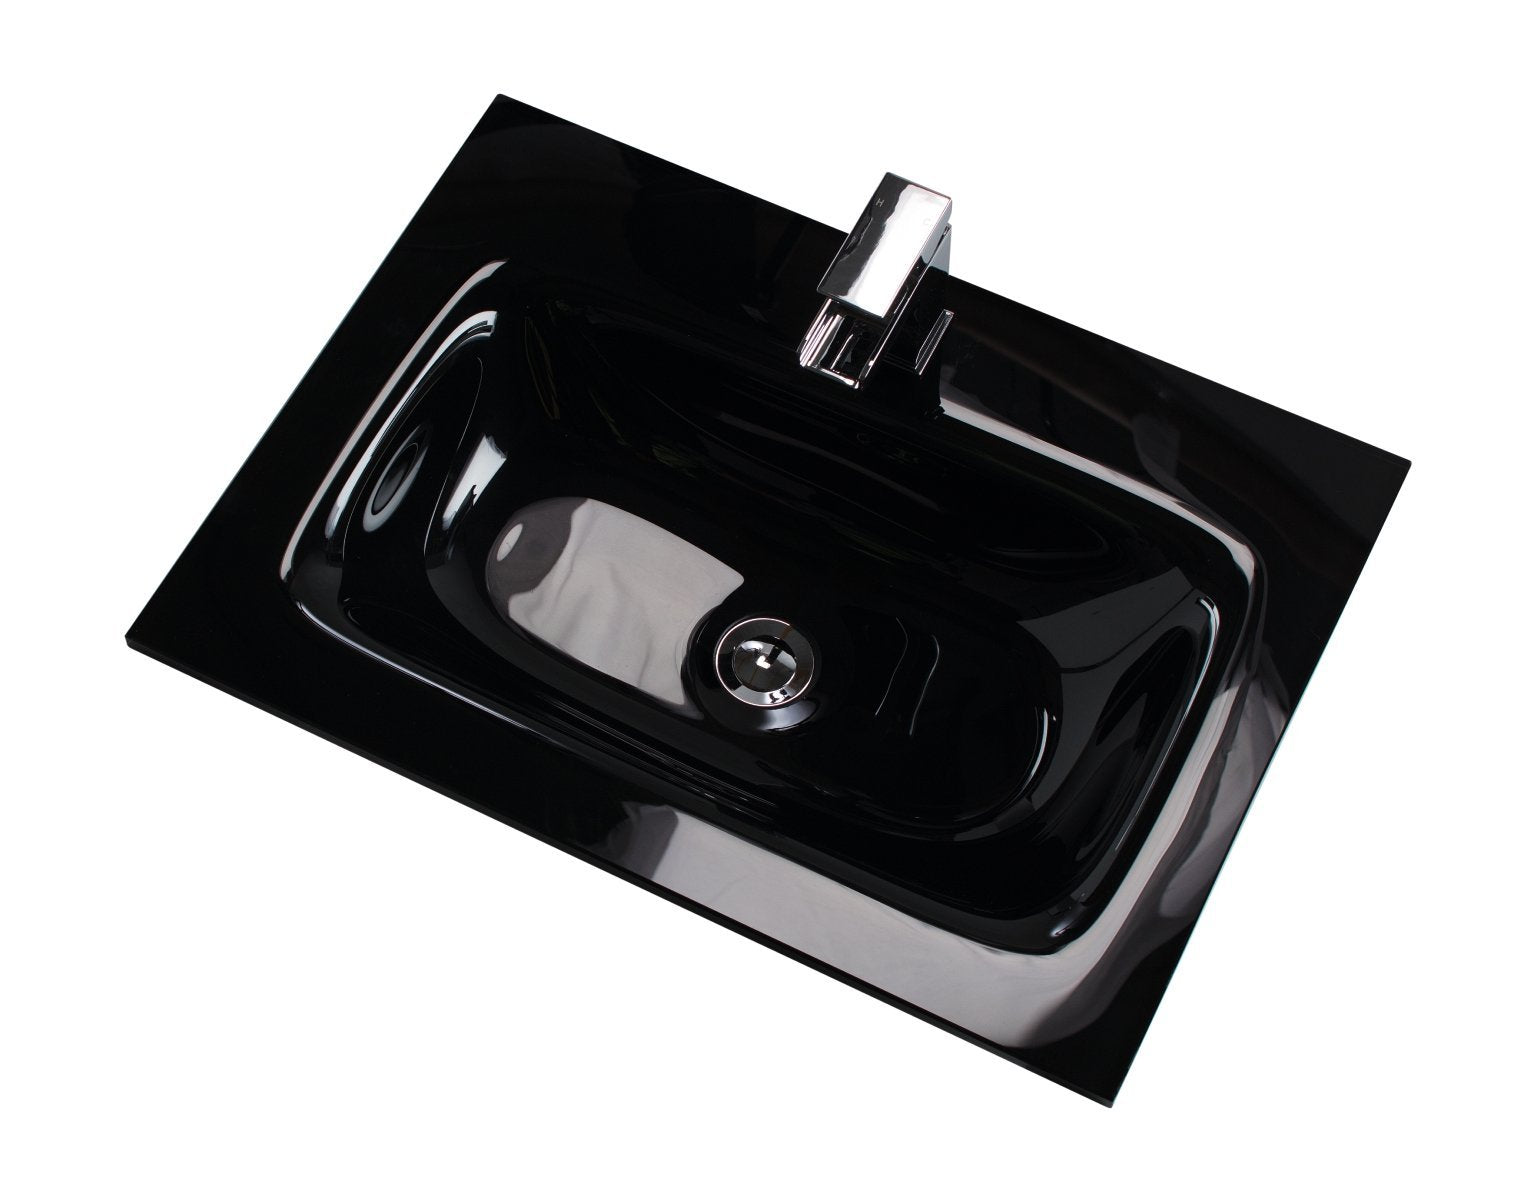 Cassellie Idon Black Style Glass Vanity Unit Basin - 810mm Wide - 1 Tap Hole - Black